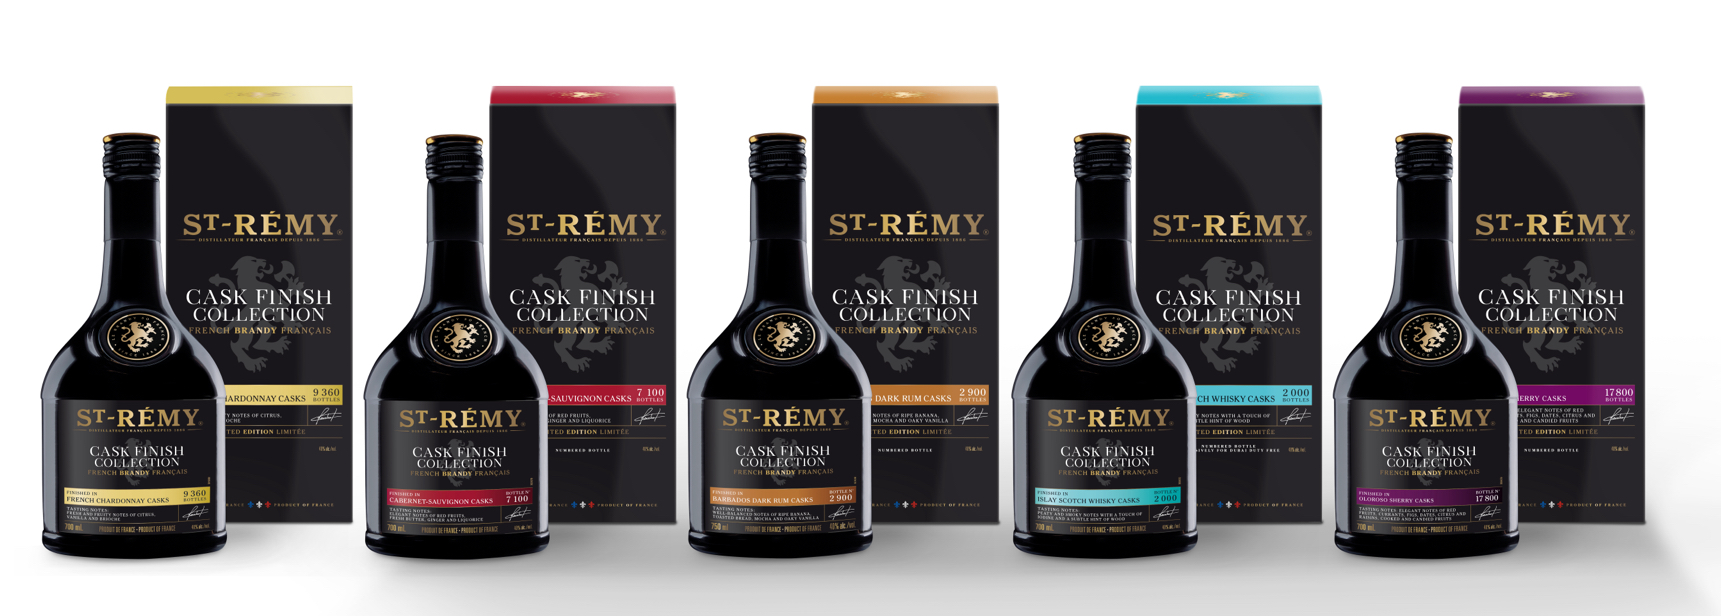 THE CASK FINISH COLLECTION CONTINUES TO GROW